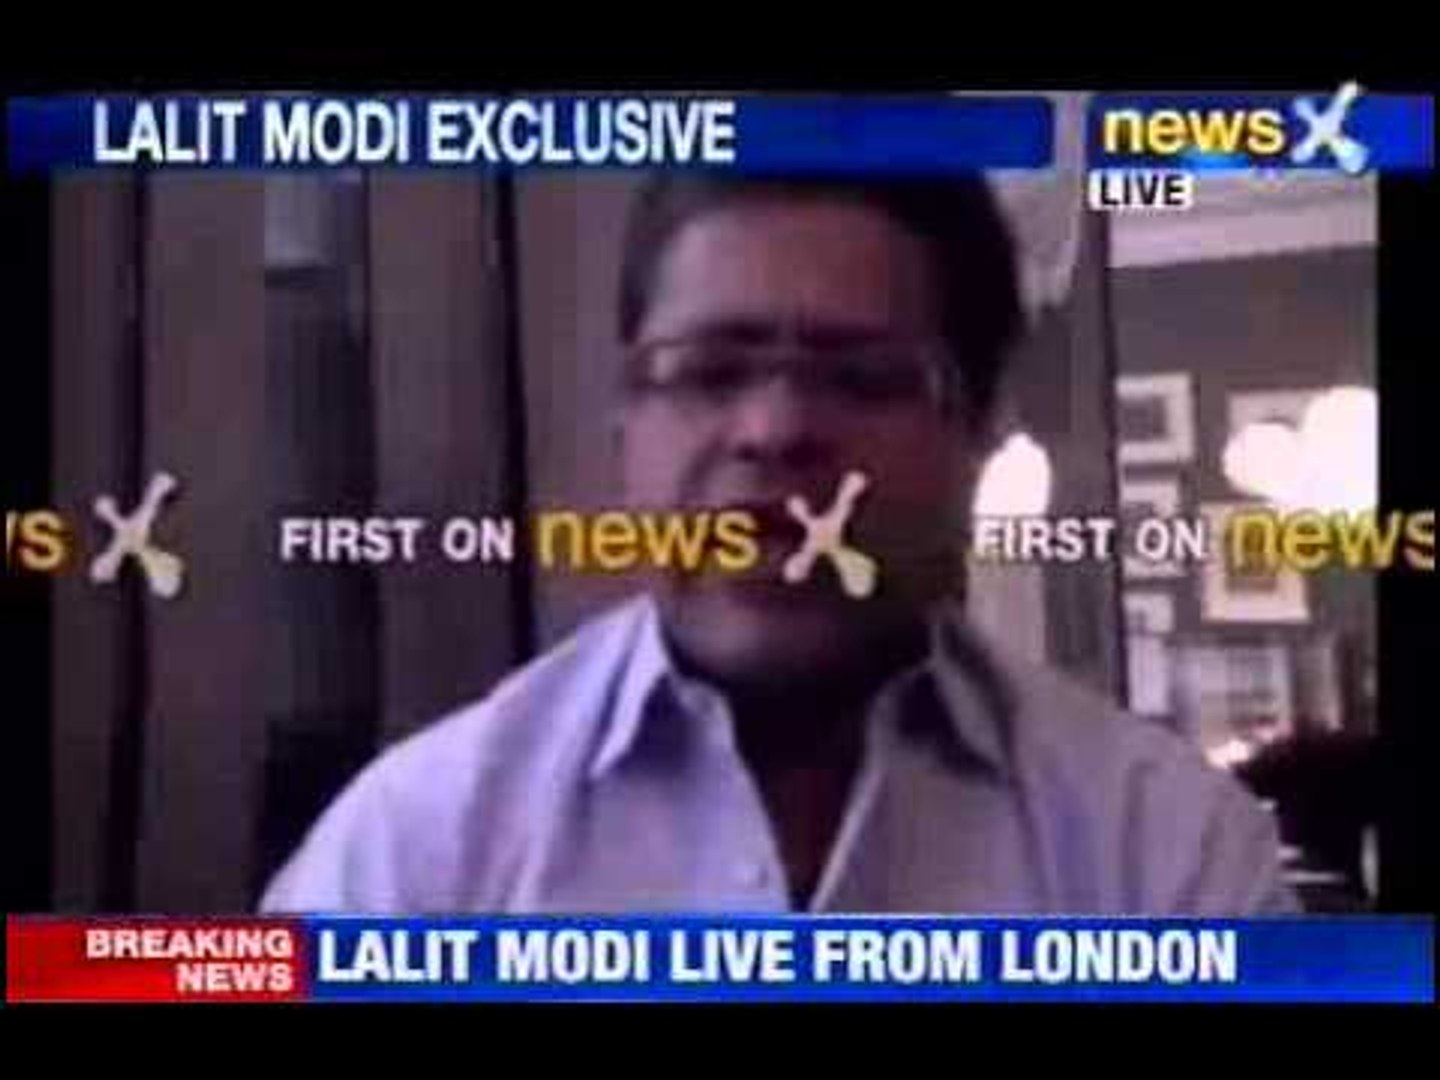 News X Exclusive : Lalit Modi live from London - Part 1